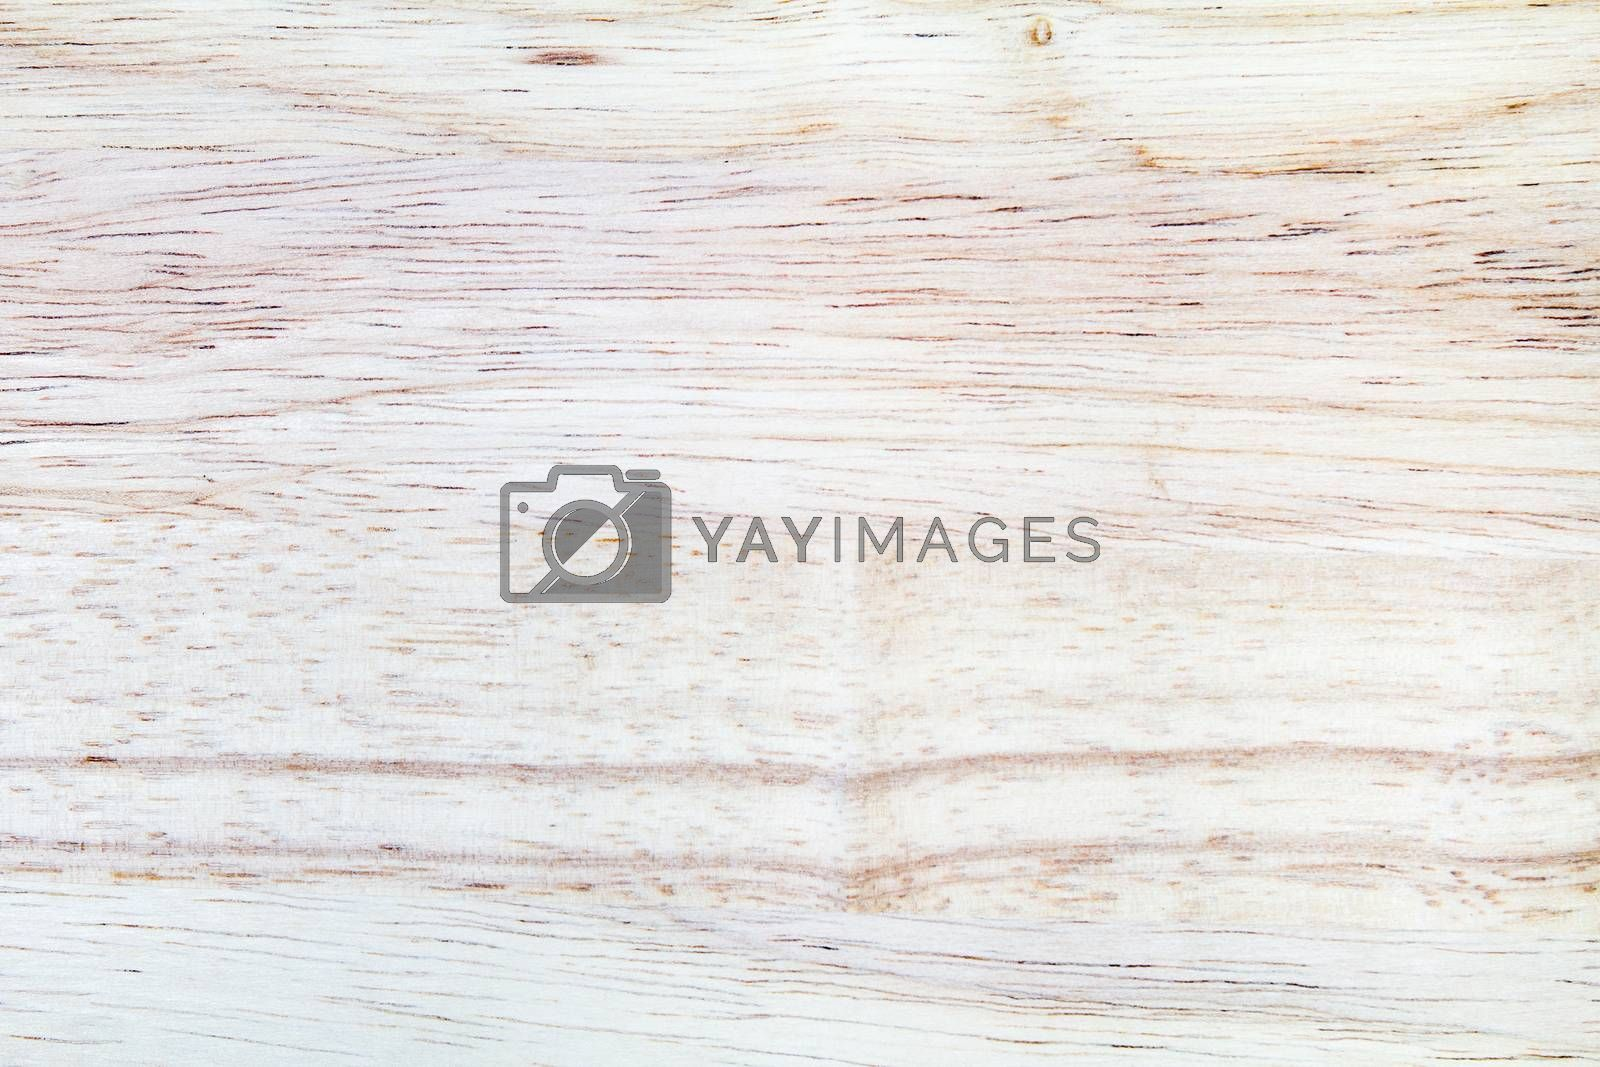 Royalty free image of wood background  by theerapoll